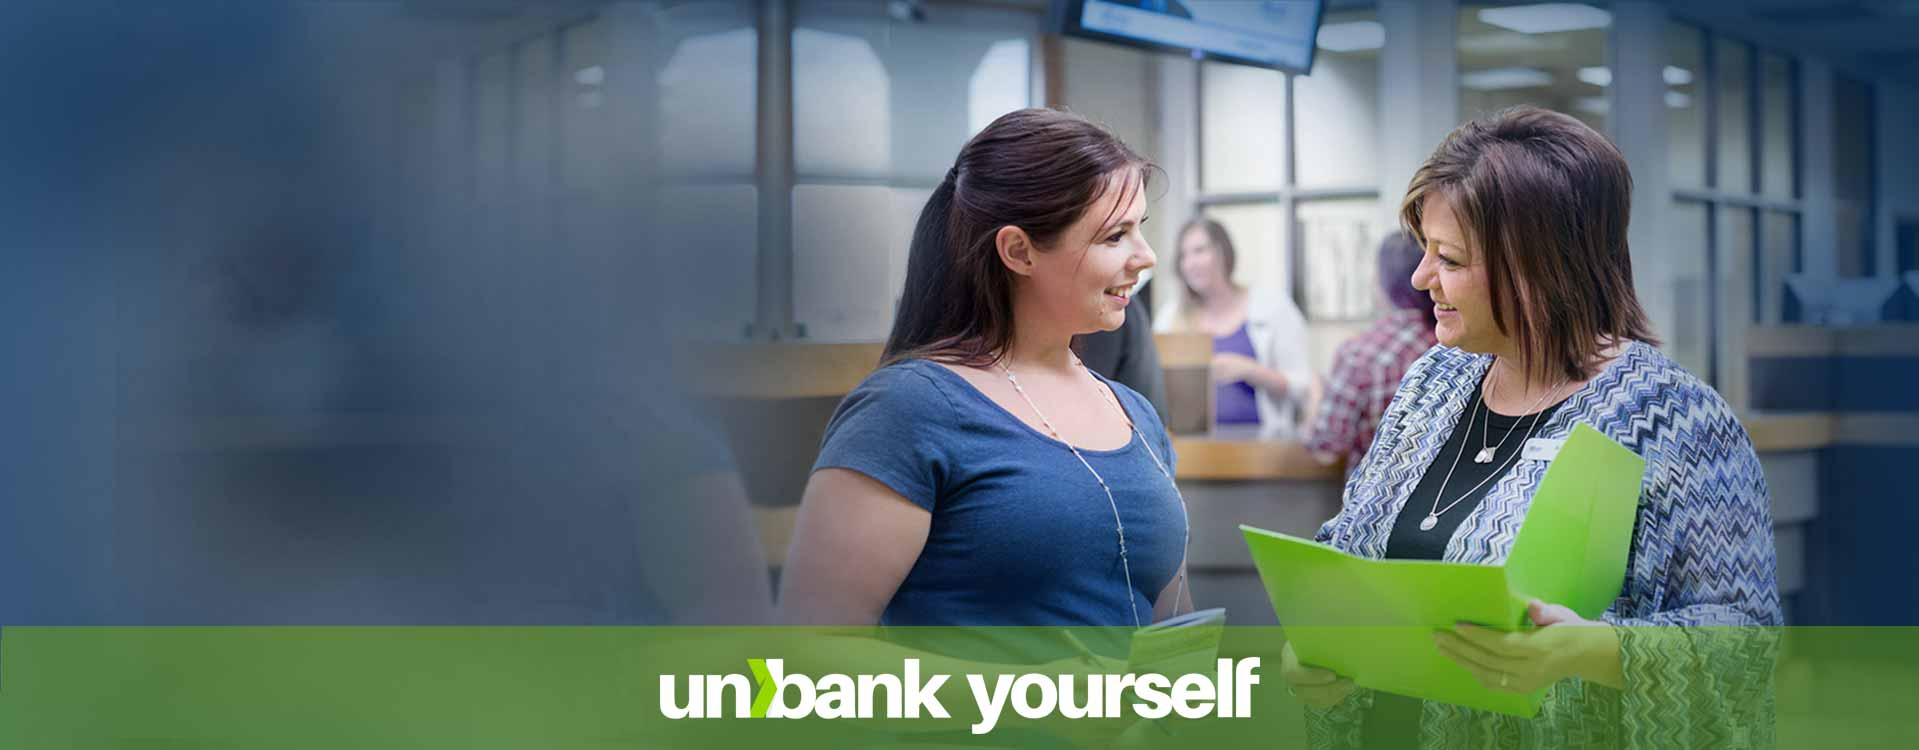 Home-banner_Good-advice_Estevan-ladies_unbank-yourself_desktop_1919x750_left-side